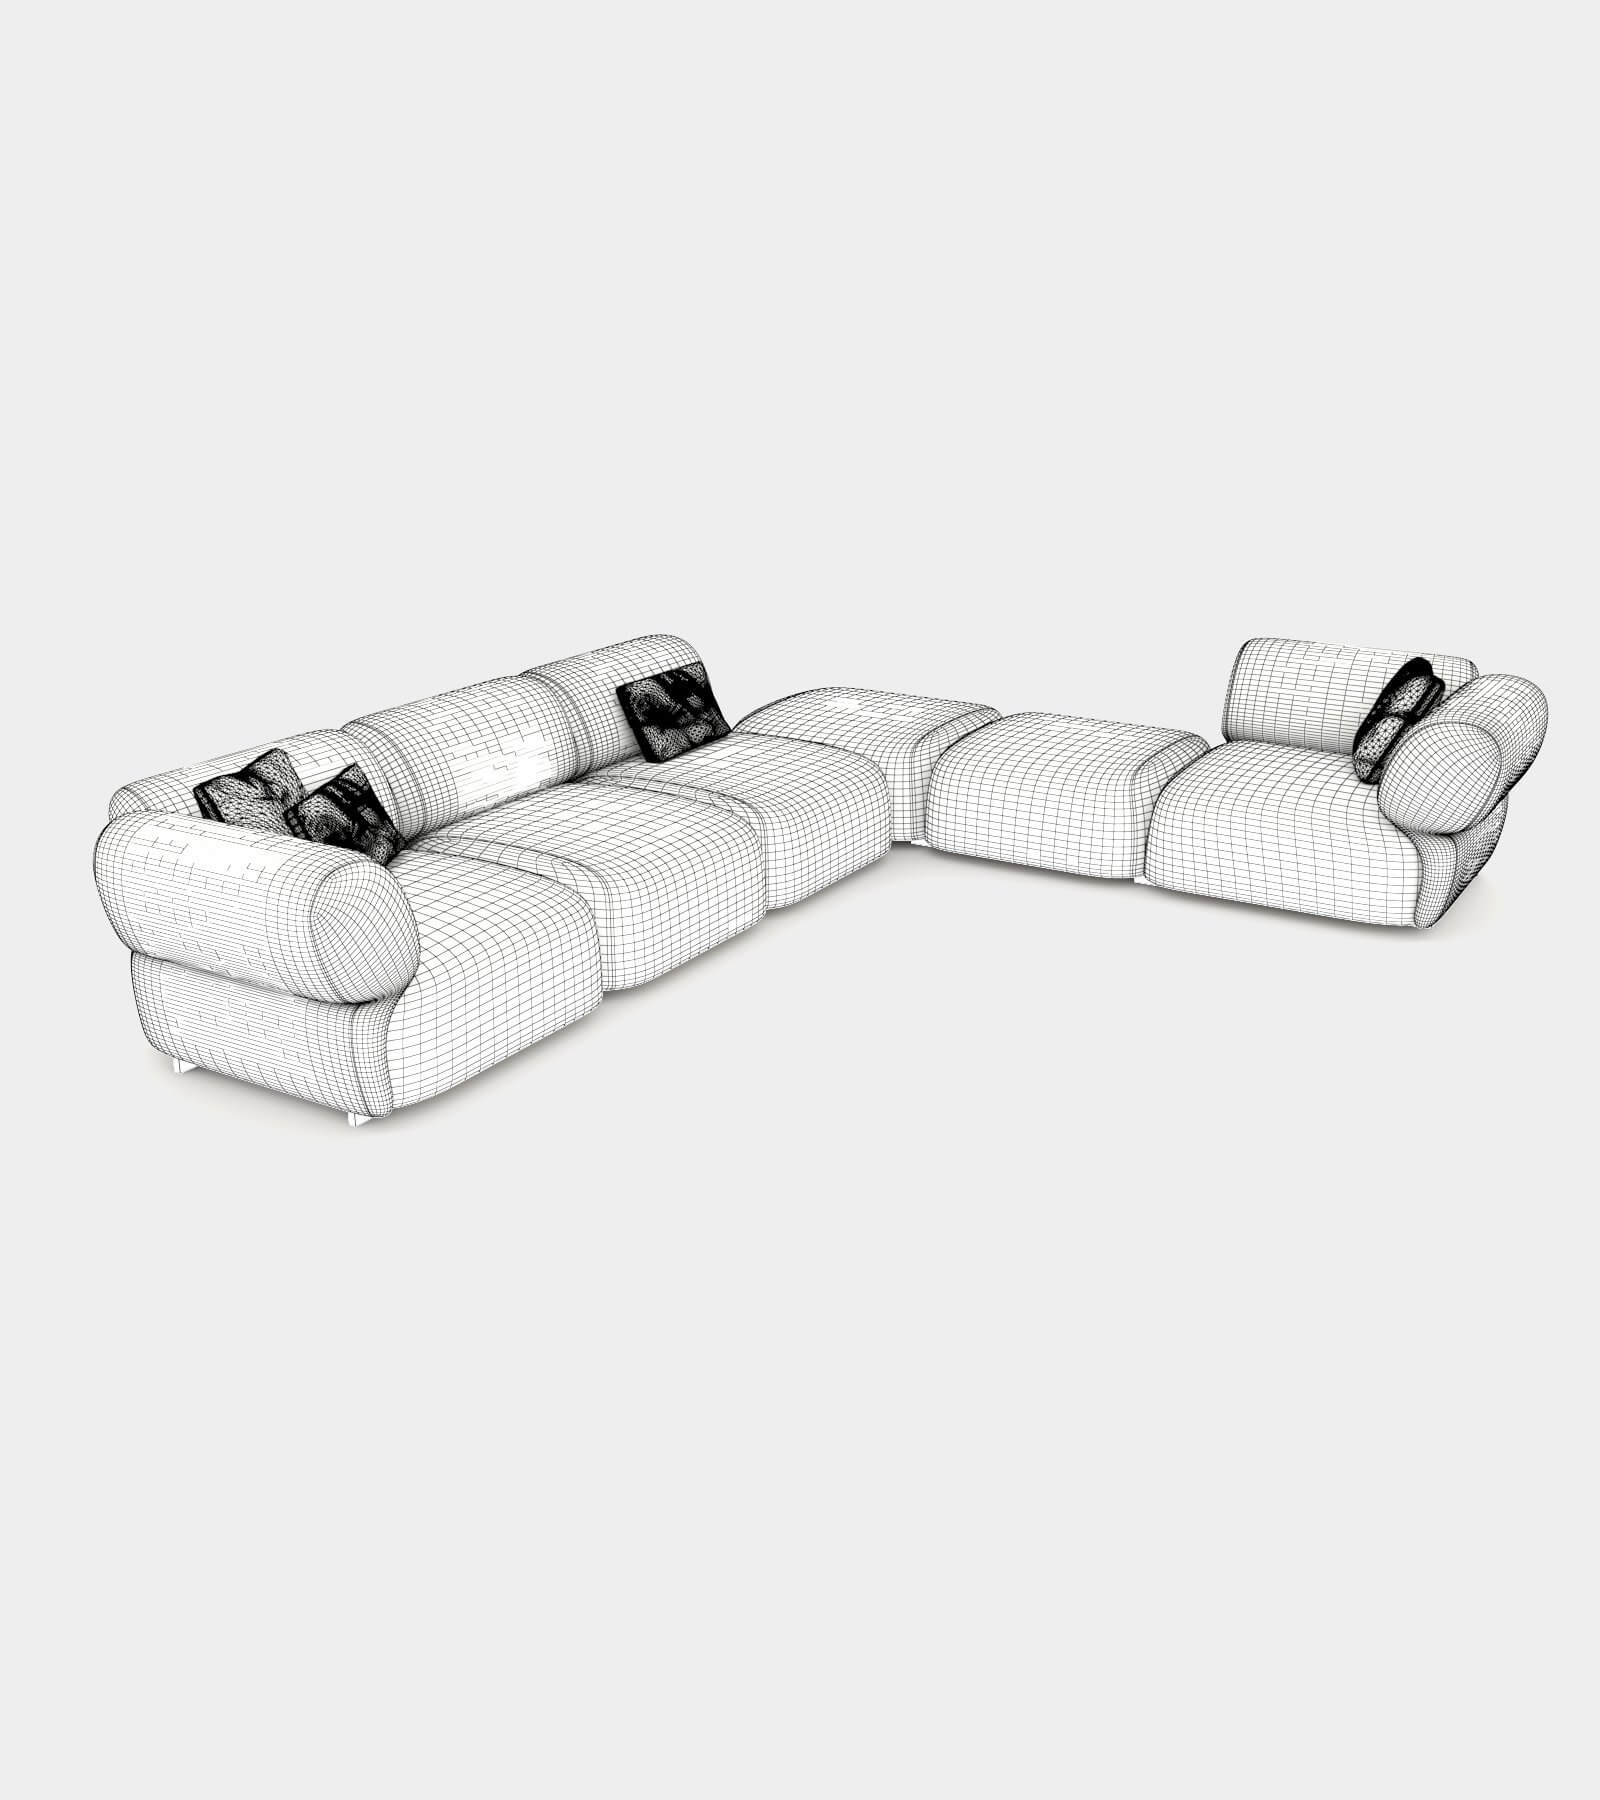 Cozy sofa with round shapes-wire-1 3D Model